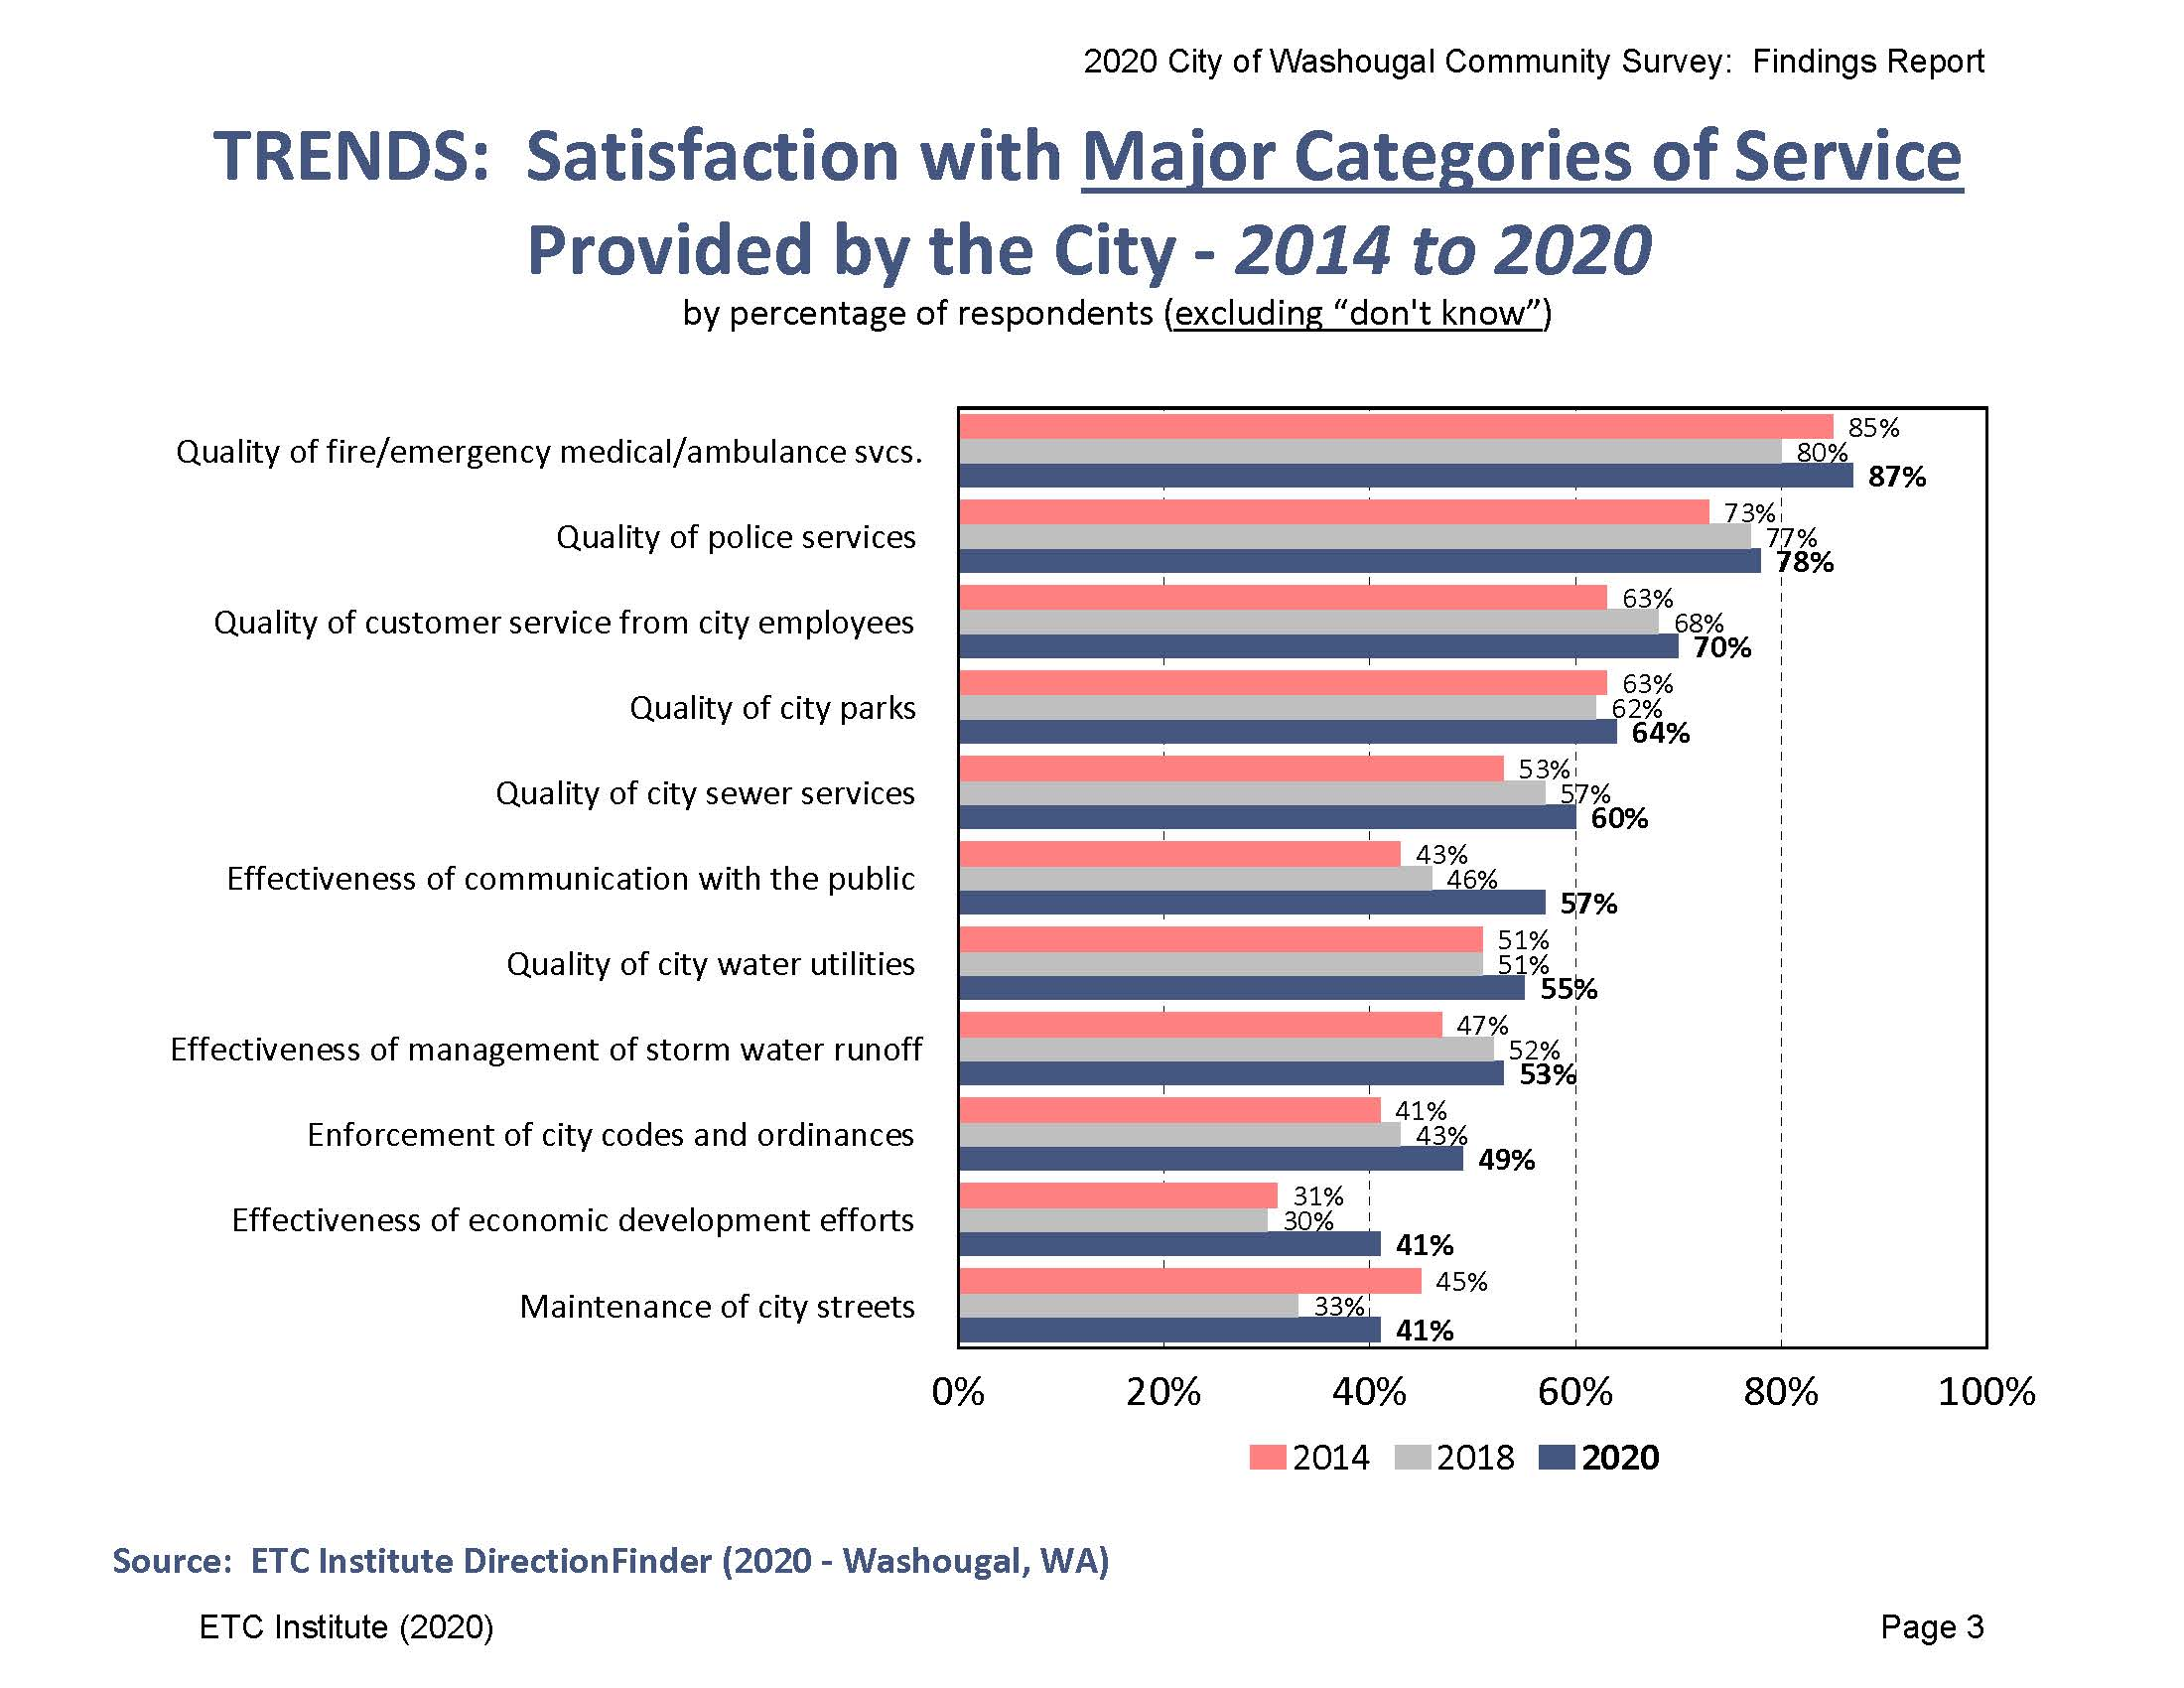 Satisfaction with Major Categories of Service 2014-2020